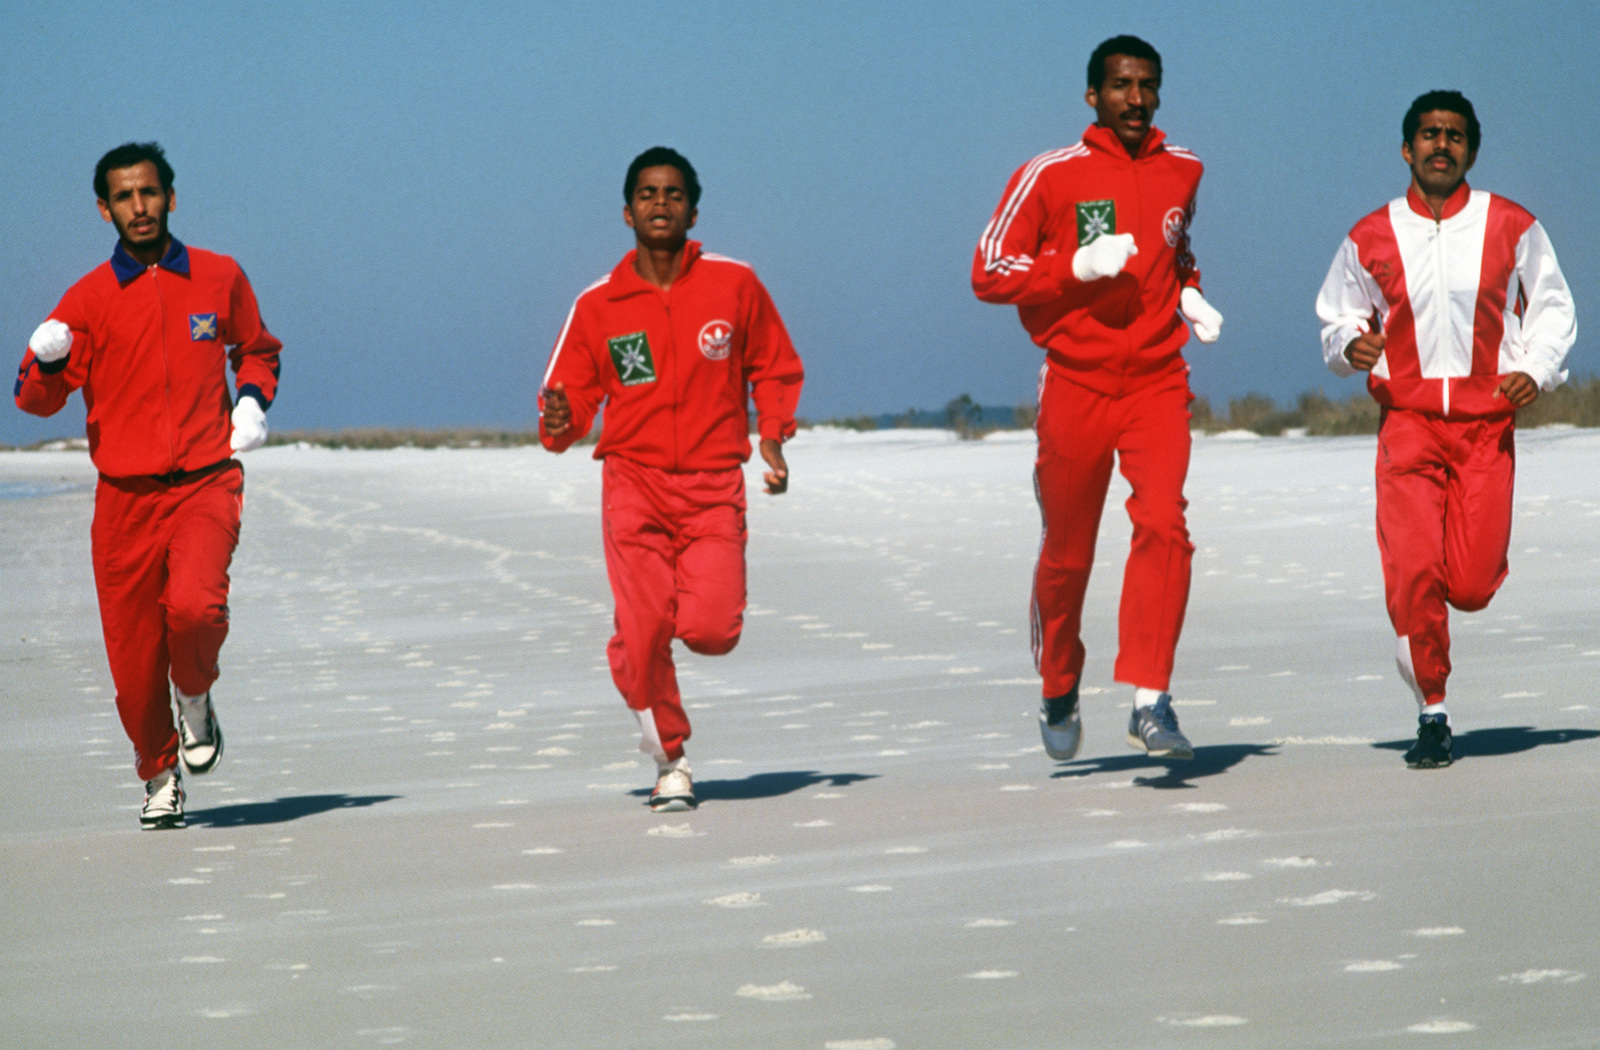 Members of the Oman cross country team jog along the beach during training for the 1988 Conseil International Du Sport Militaire's Cross Country Championship (CISM)